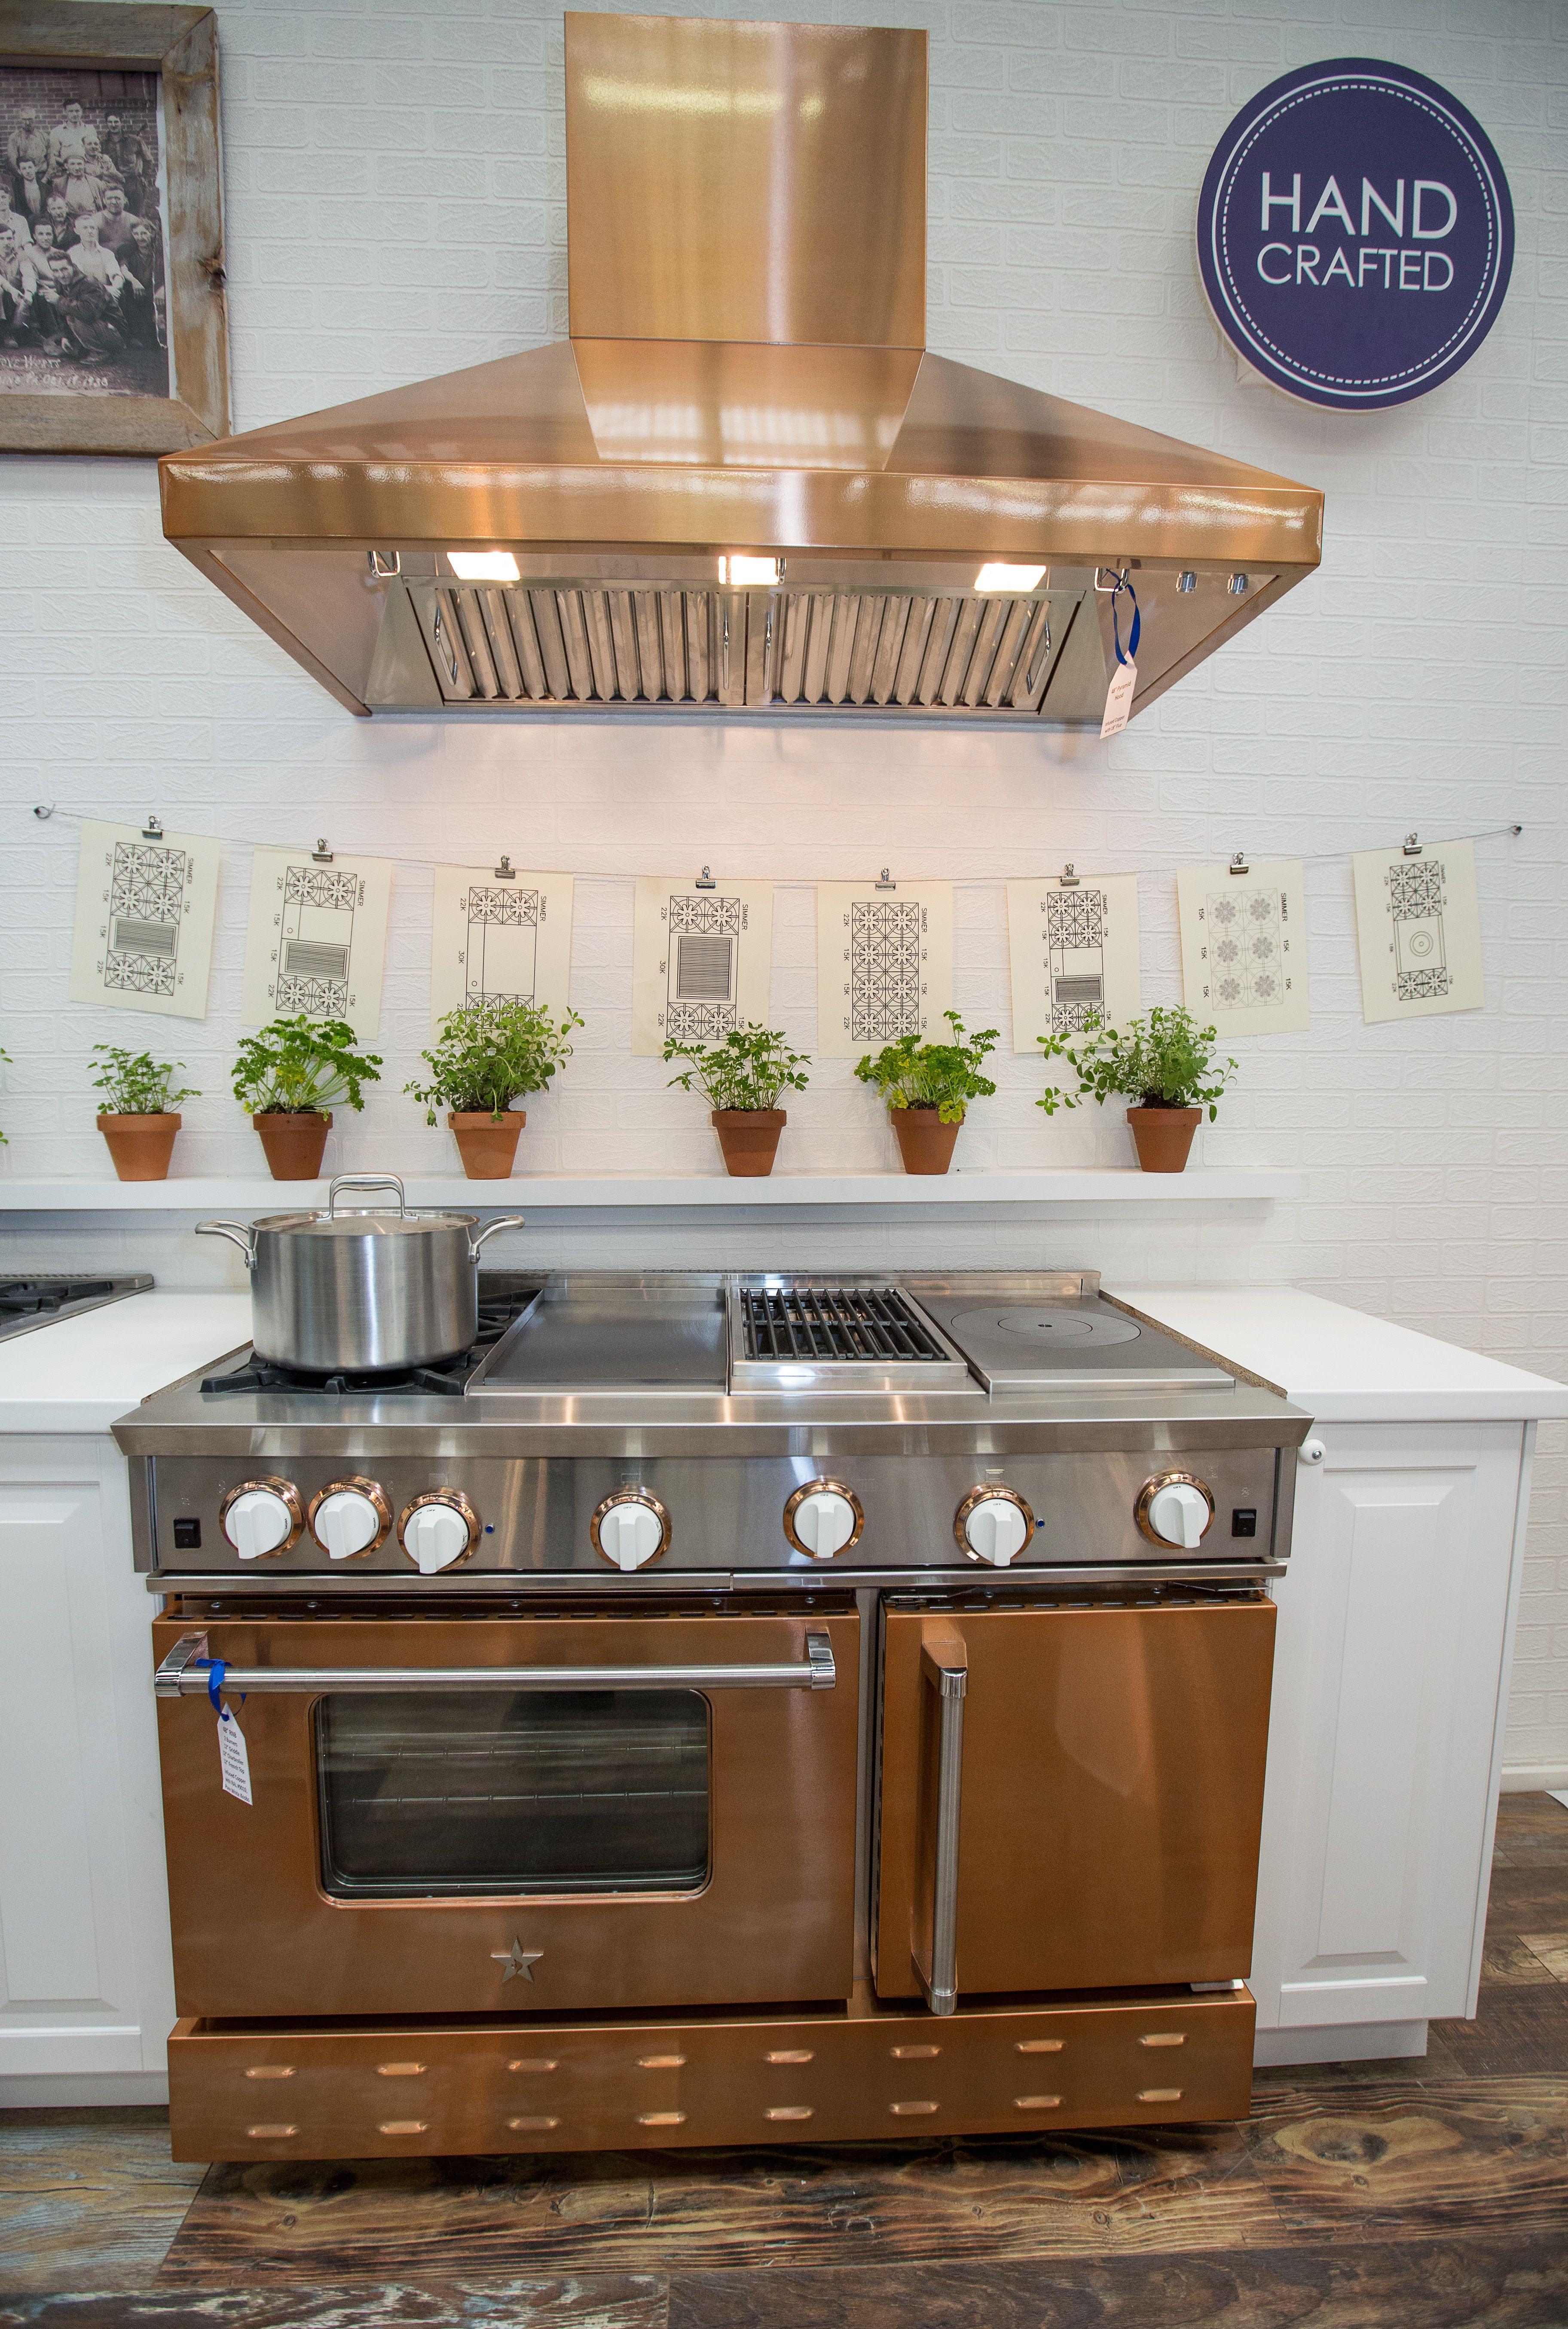 Kitchen appliance colors 2014 - Find This Pin And More On 2014 Architectural Digest Show In Nyc